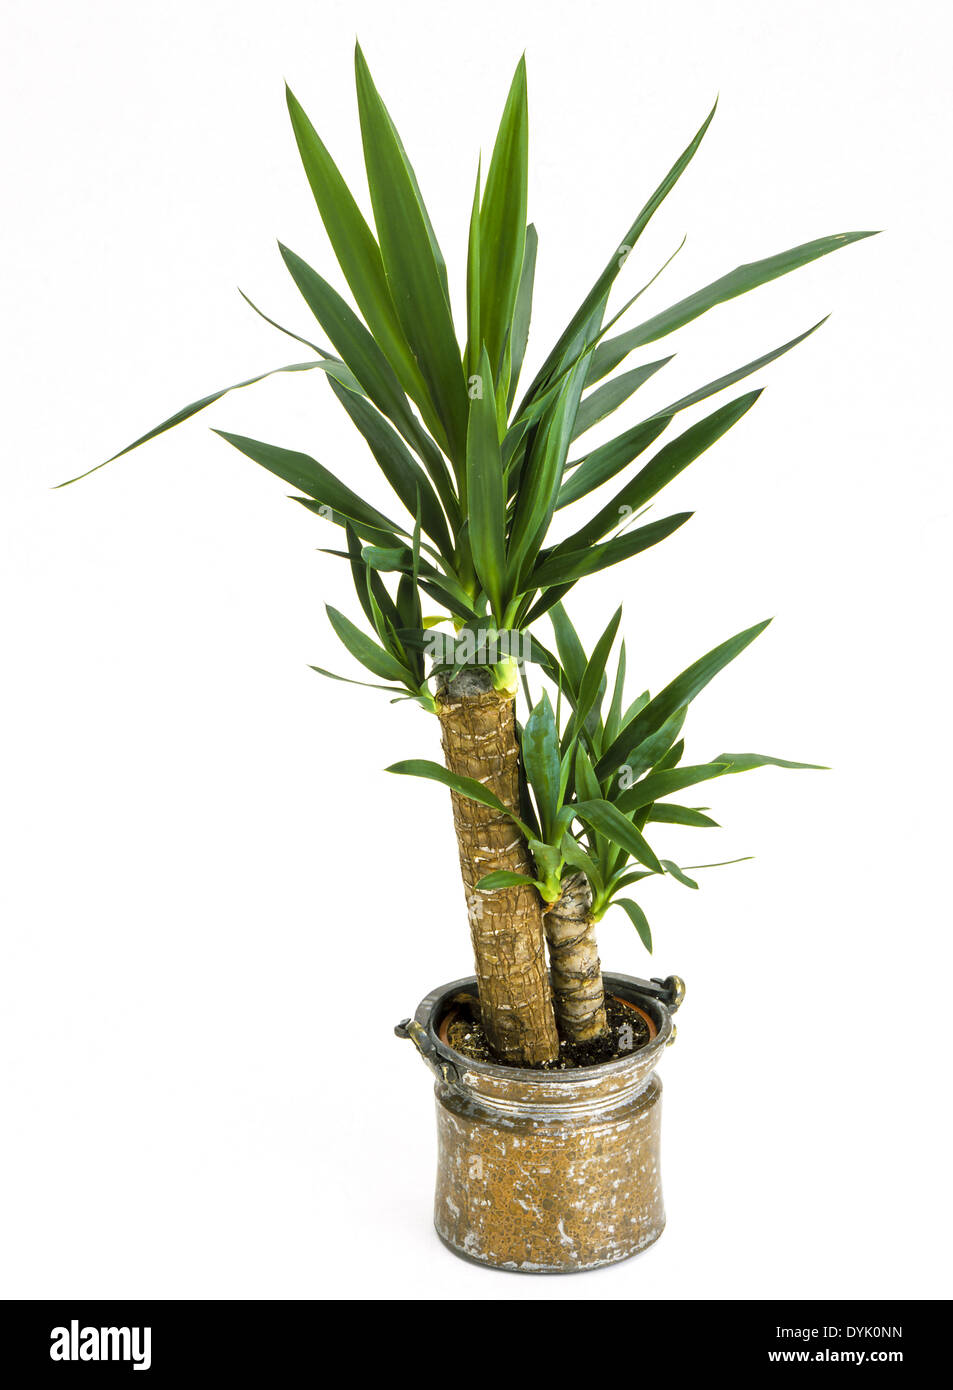 zimmerpflanzen yucca palme in einem topf indoor plants yucca palm stock photo royalty free. Black Bedroom Furniture Sets. Home Design Ideas